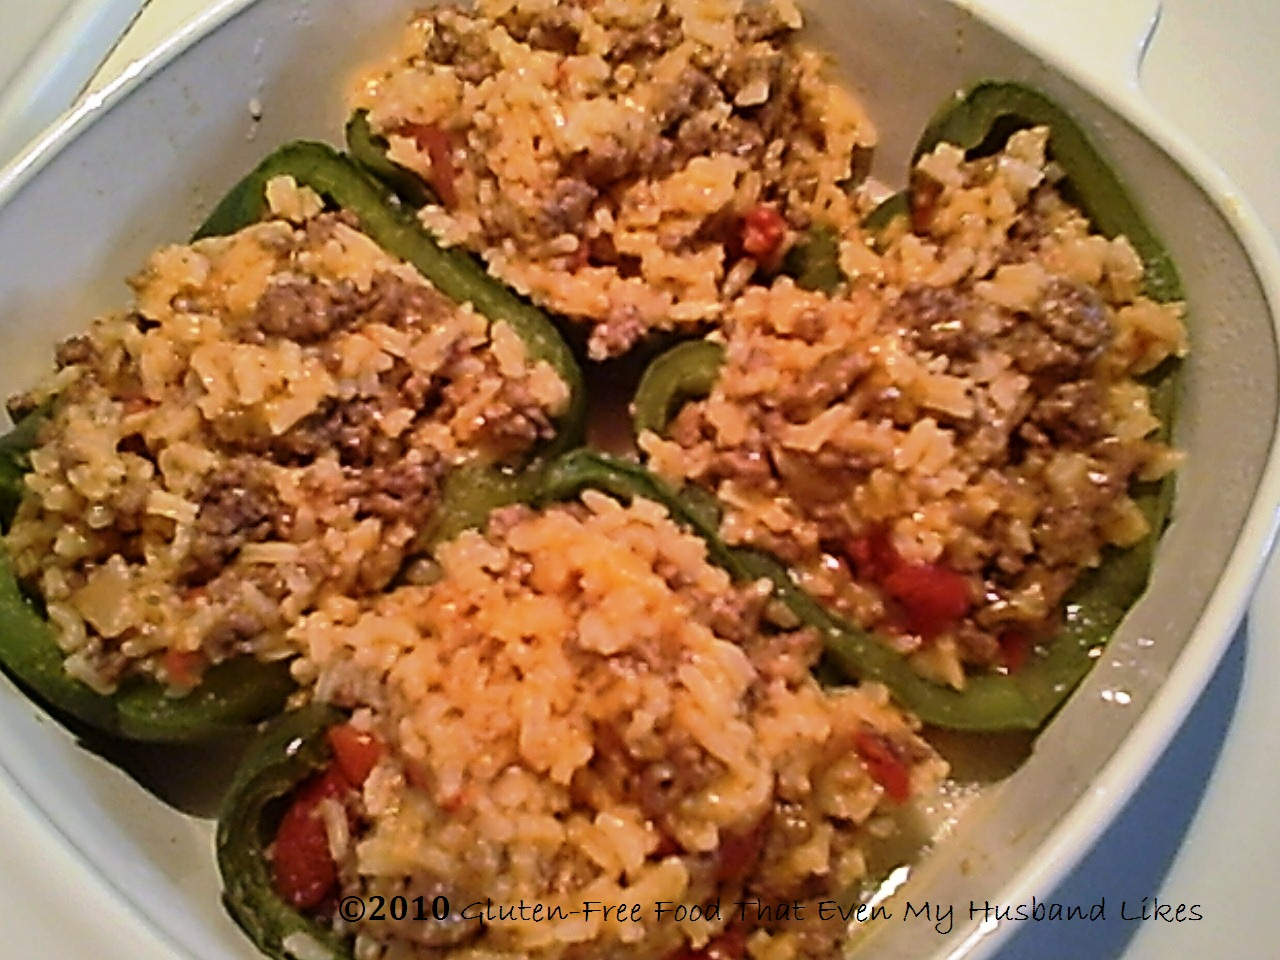 Stuffed Peppers, Gluten-free and Delicious